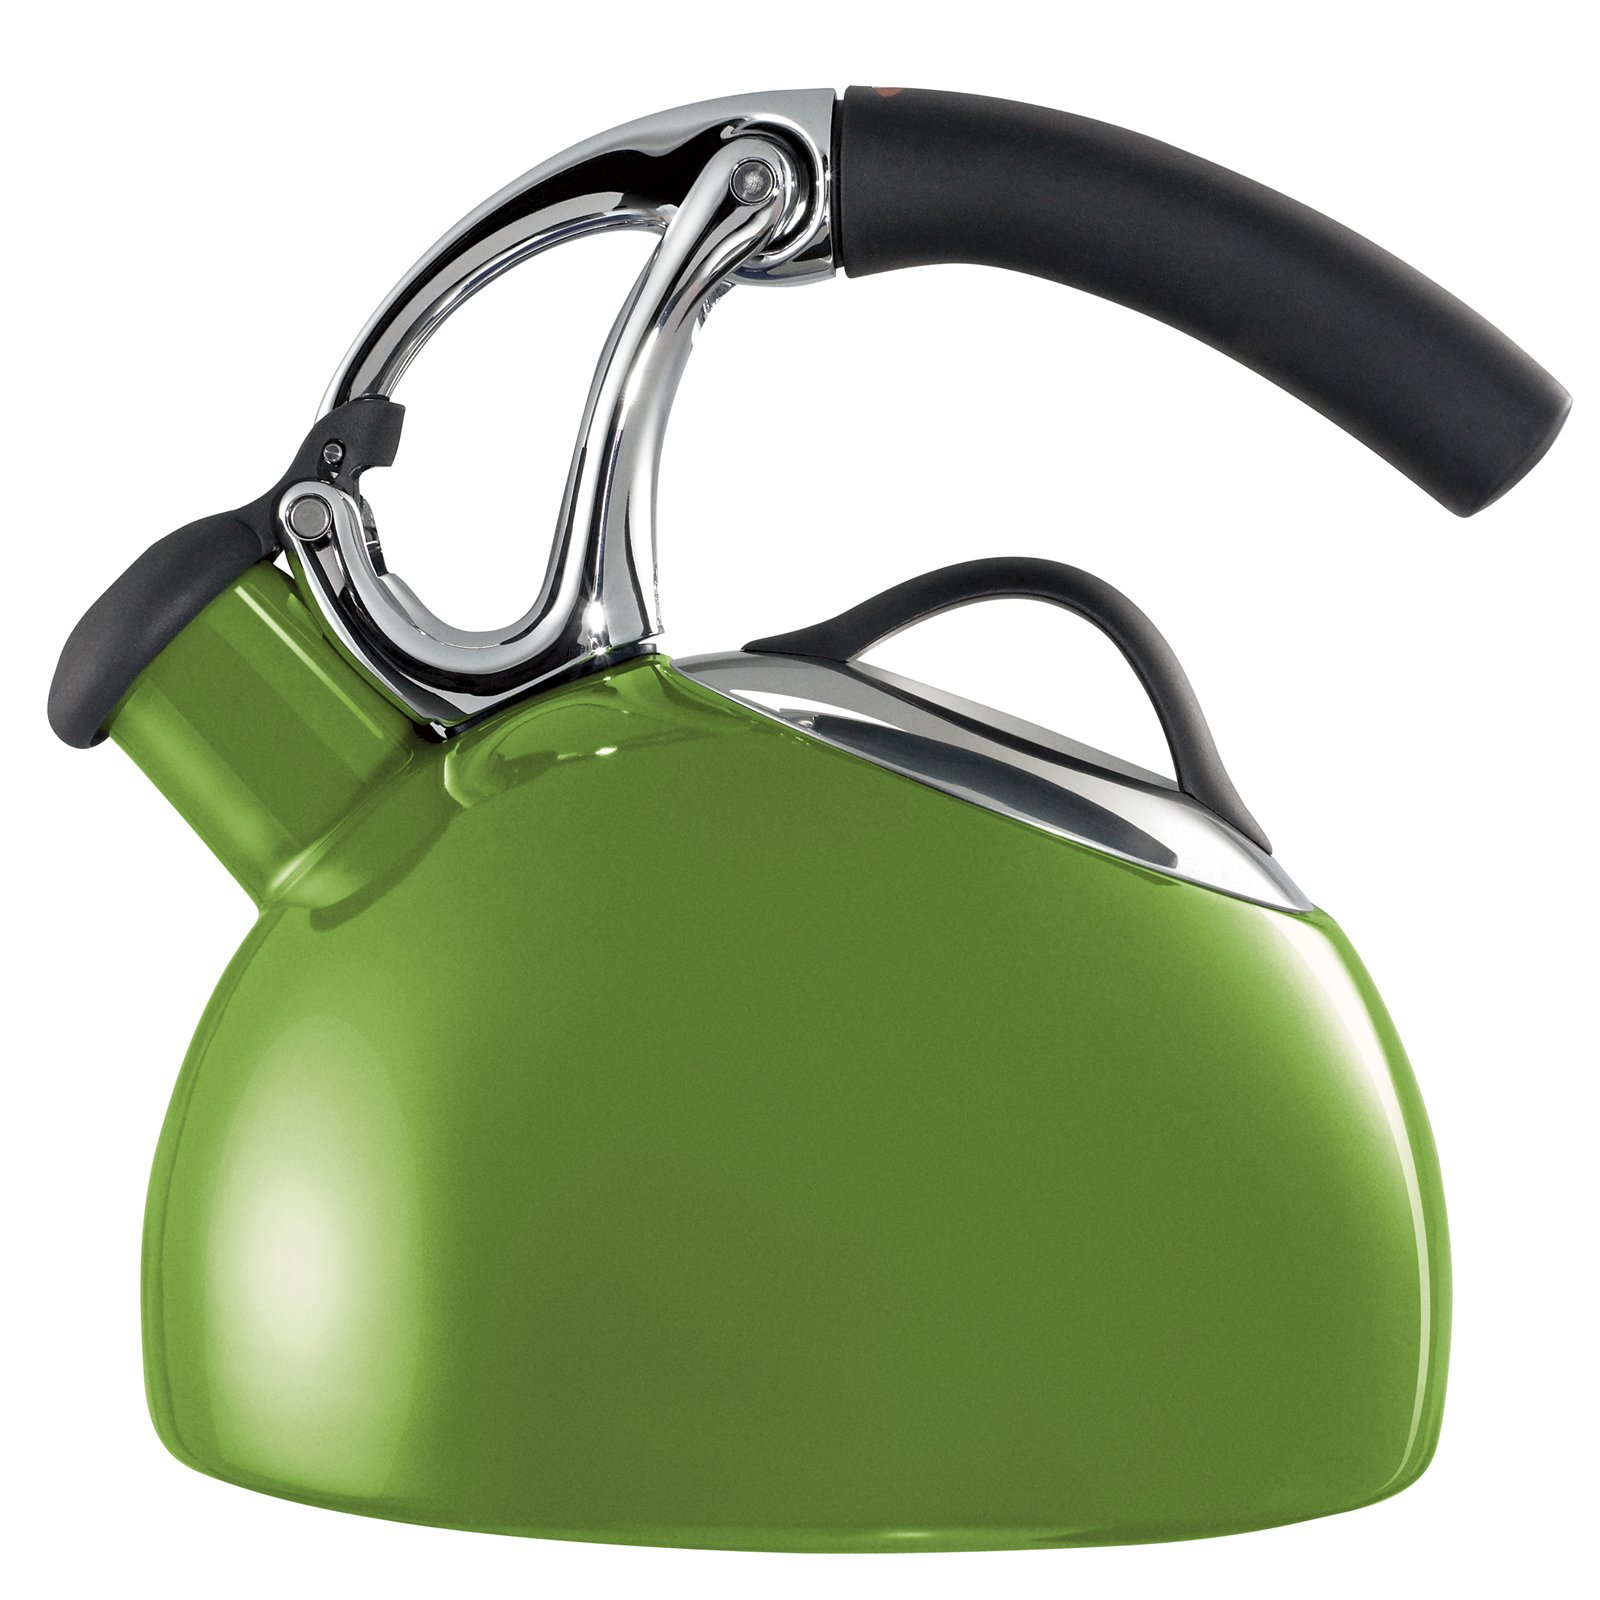 Heat water the old-fashion way with the Uplift Tea Kettle, available now. The two-quart kettle features a nonslip heat-resistant handle, stainless steel finishes, and green or eggplant coloring. The spout has a built-in whistle to alert you when your water is boiling and it automatically opens when you lift the handle, meaning that even if you've lost some of your grip strength, you can still pour a cup for your afternoon tea.  New from OXO by Miyoko Ohtake